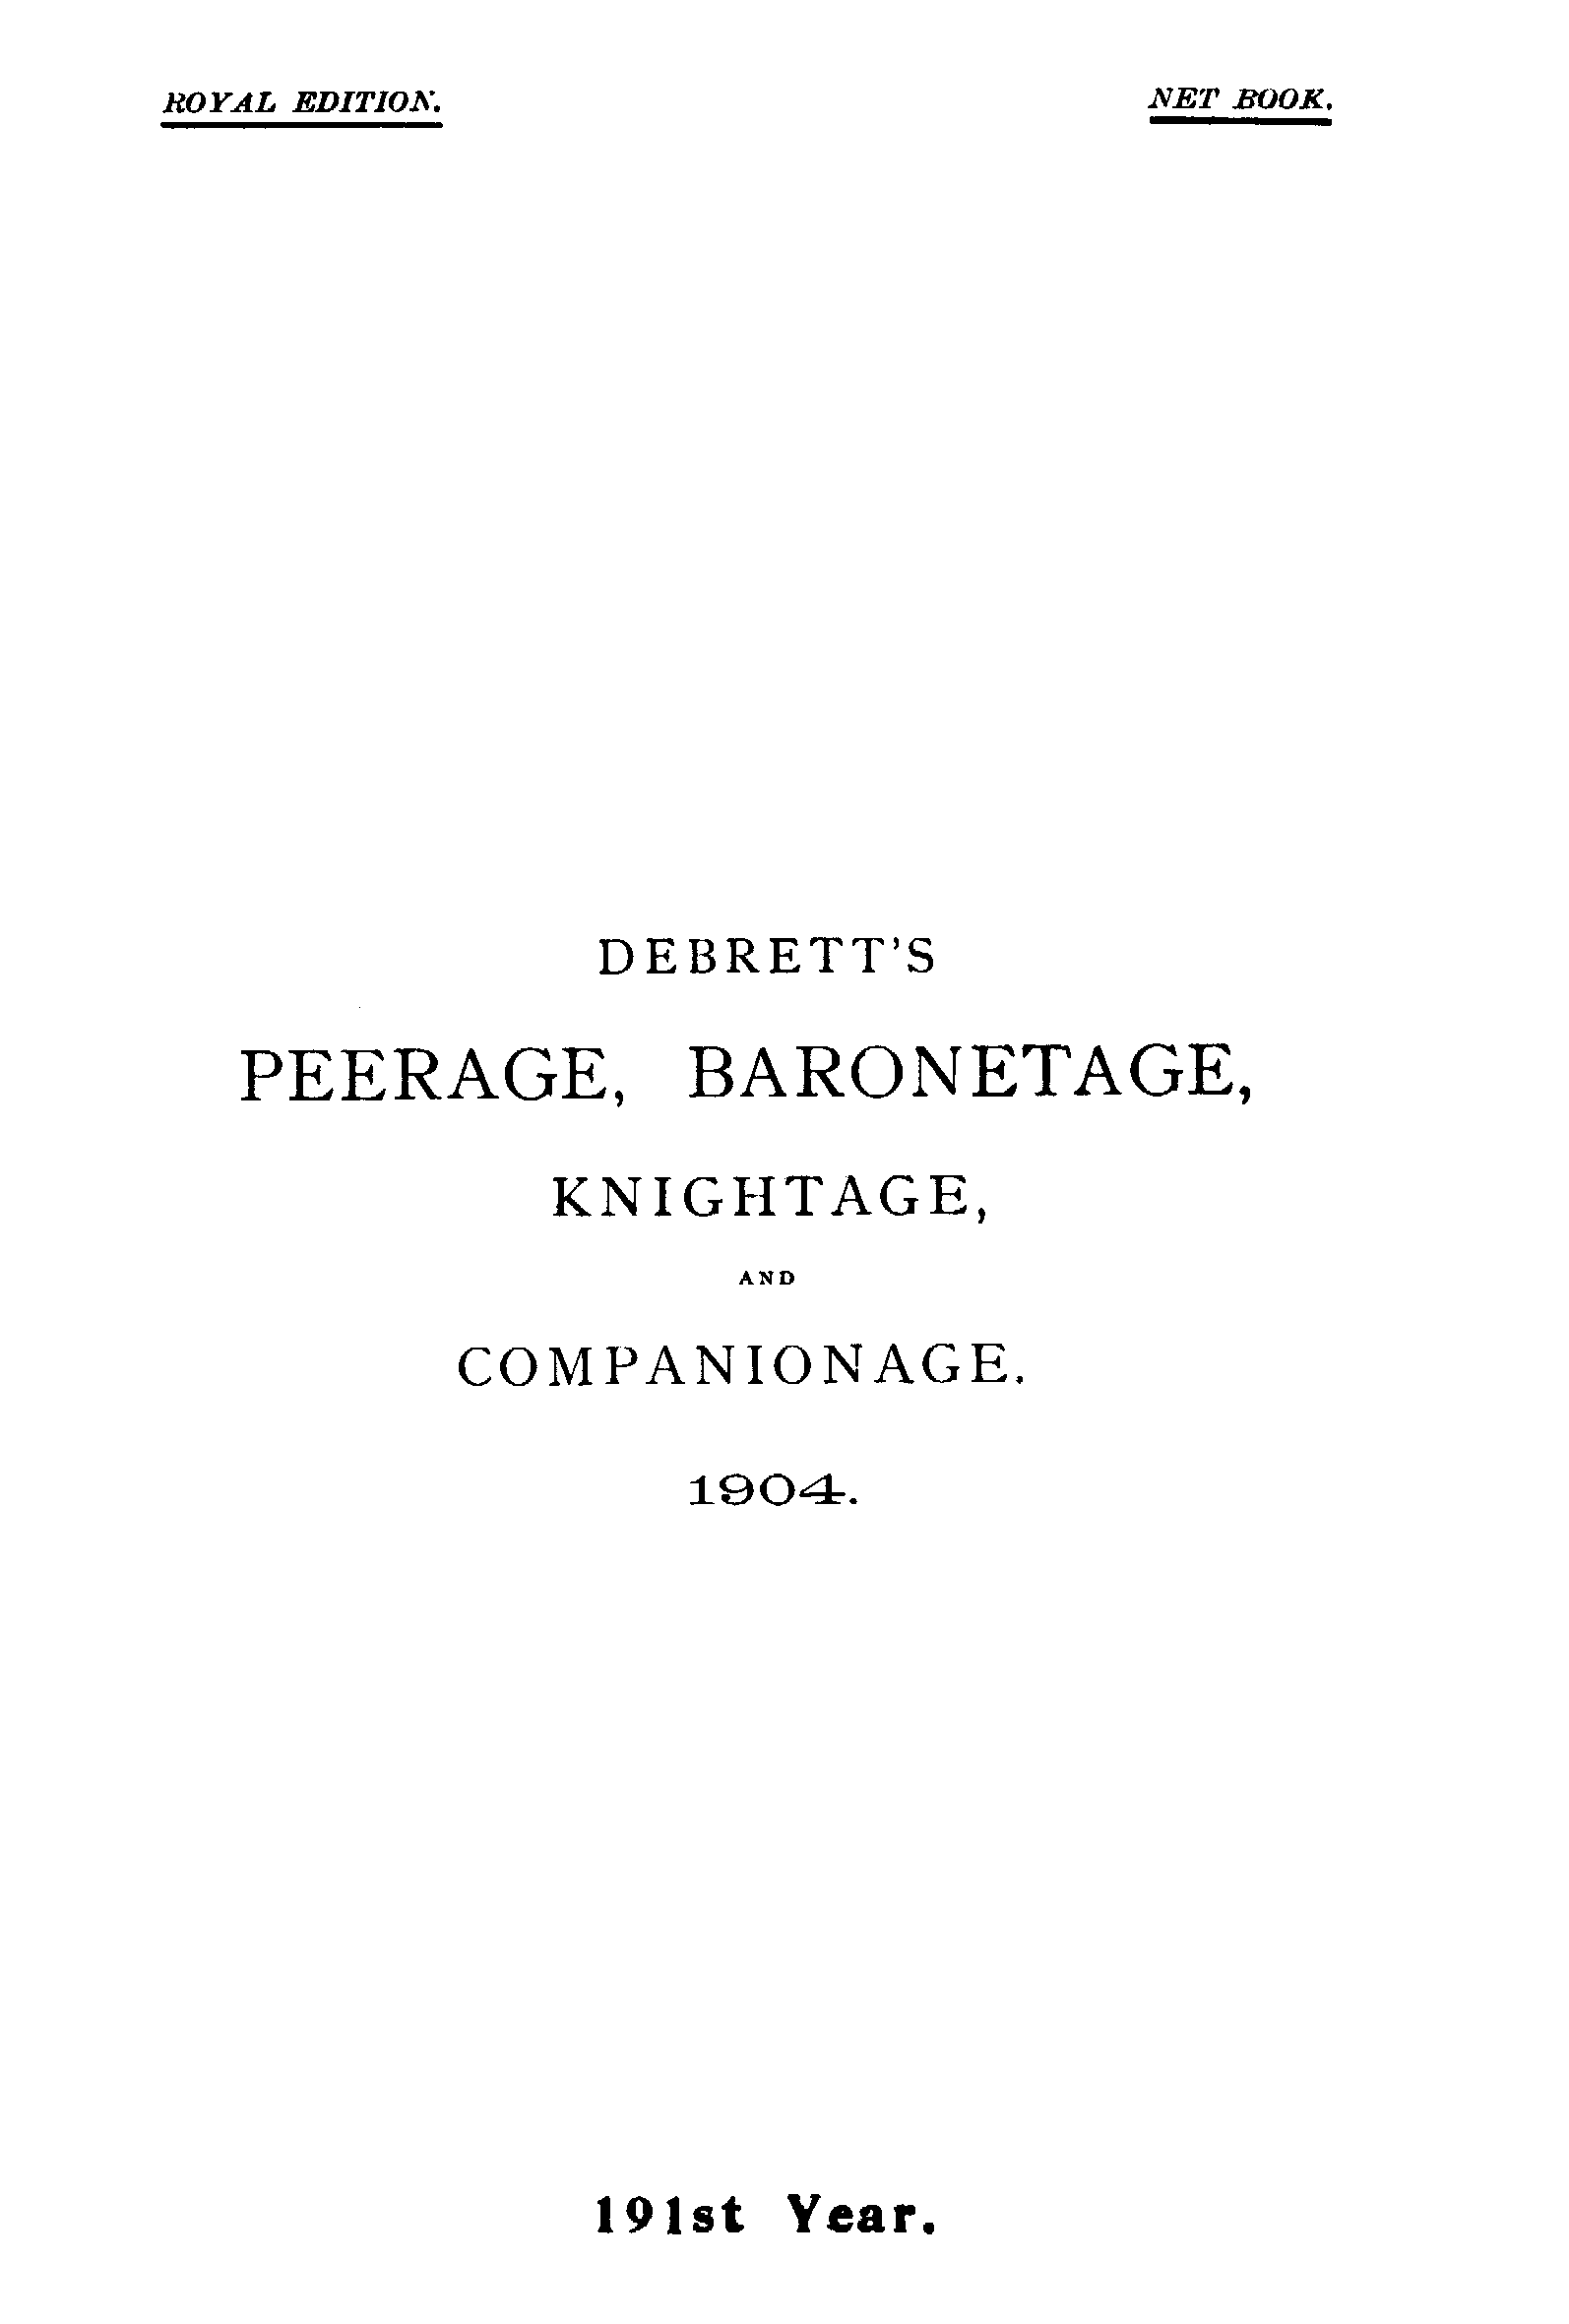 Debrett's Peerage, Baronetage, Knightage and Companionage, 1904 page Cover - click to open larger version in a new window